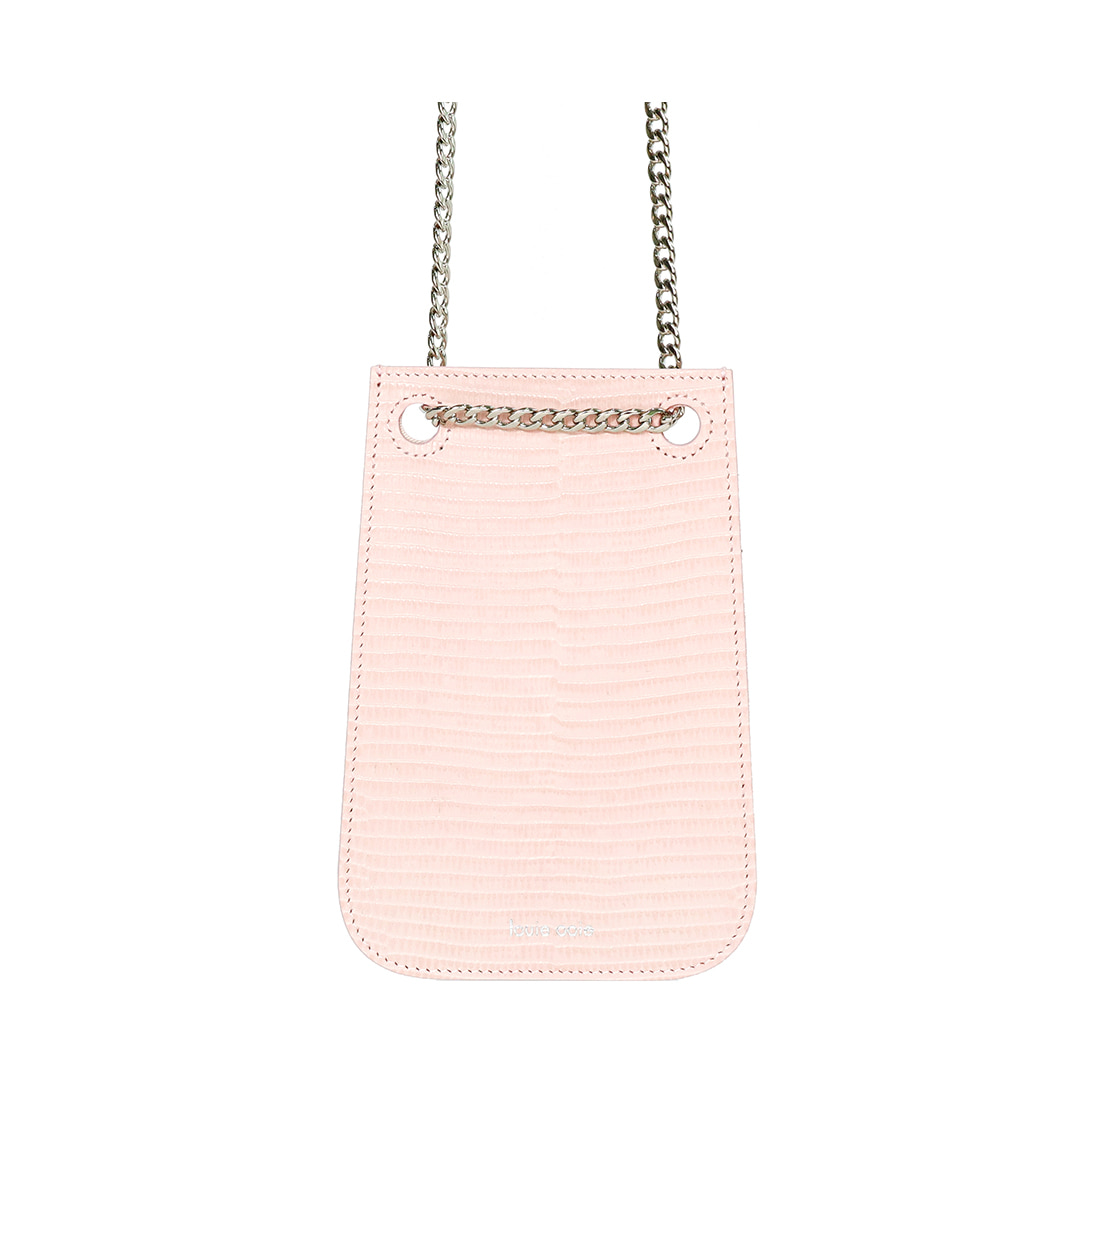 doris bag - pink embo